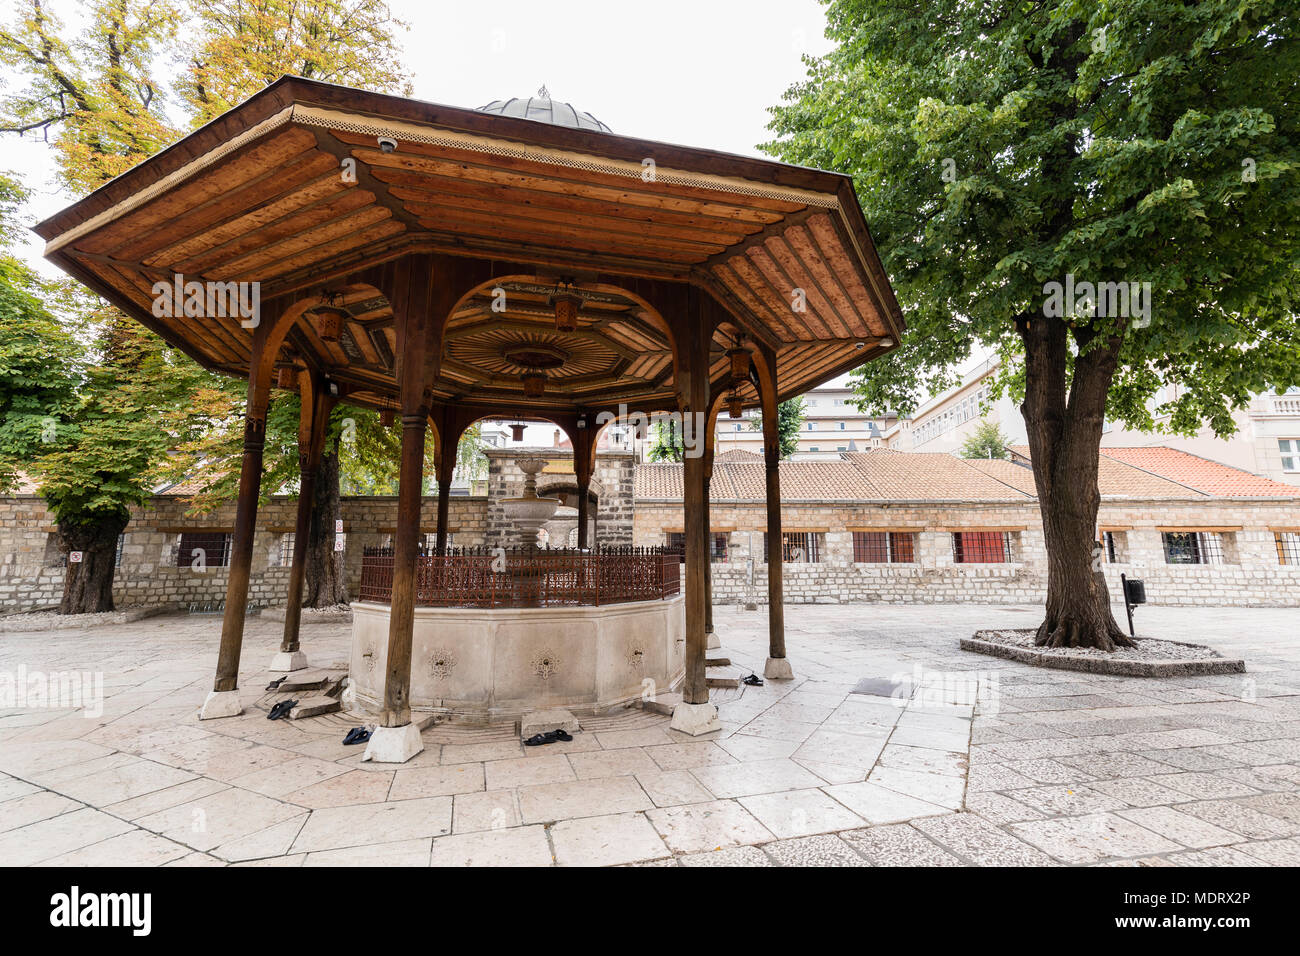 Sarajevo, Bosnia-Herzegovina, July 16 2017: The fountain in the courtyard of Gazi Husrev-beg Mosque in old town of Sarajevo - Stock Image